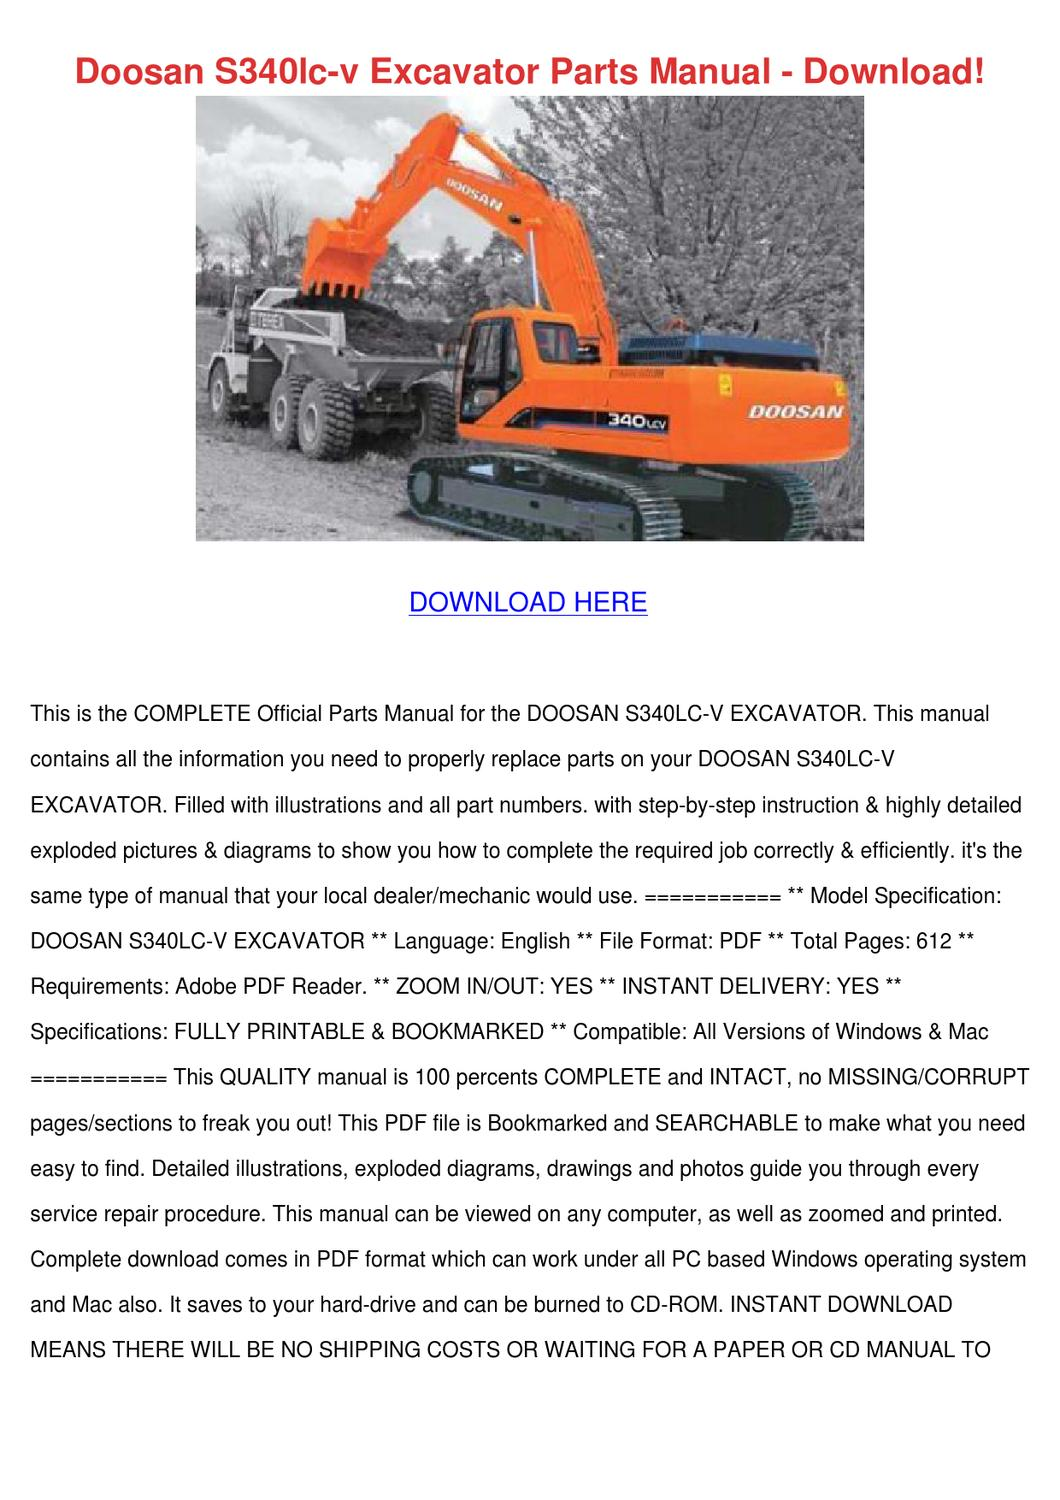 hight resolution of doosan s340lc v excavator parts manual downlo by philipppeltier issuu